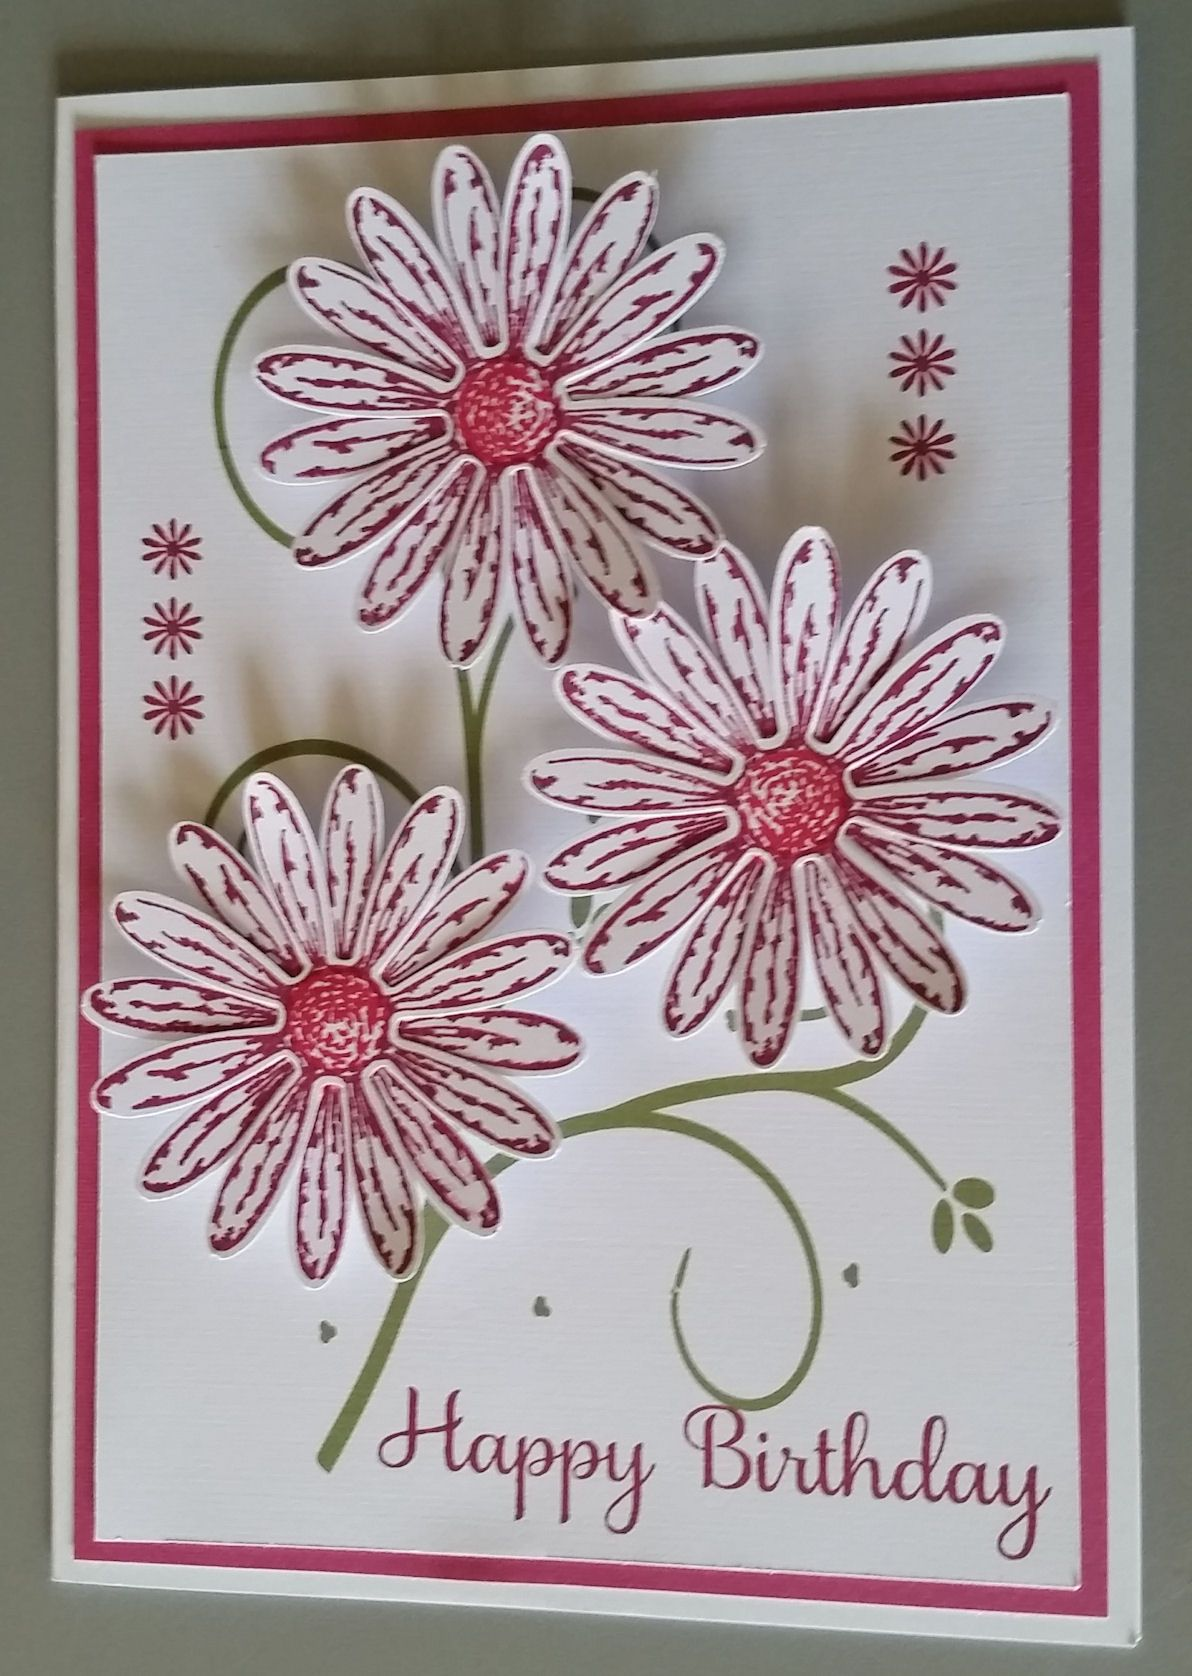 Birthday card designed by sandy using stampin up daisy delight stamp